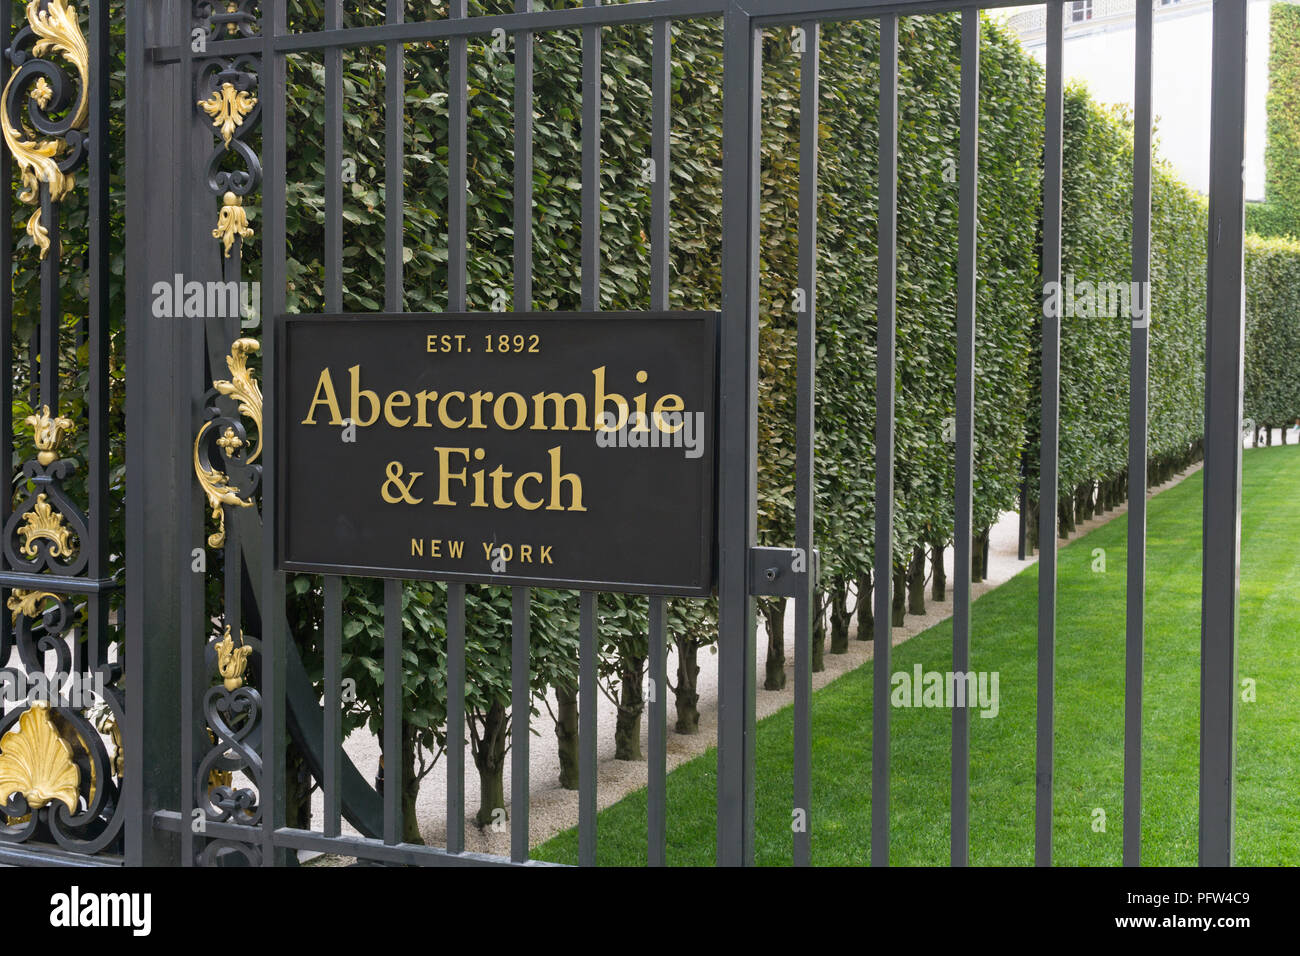 abercrombie and fitch france